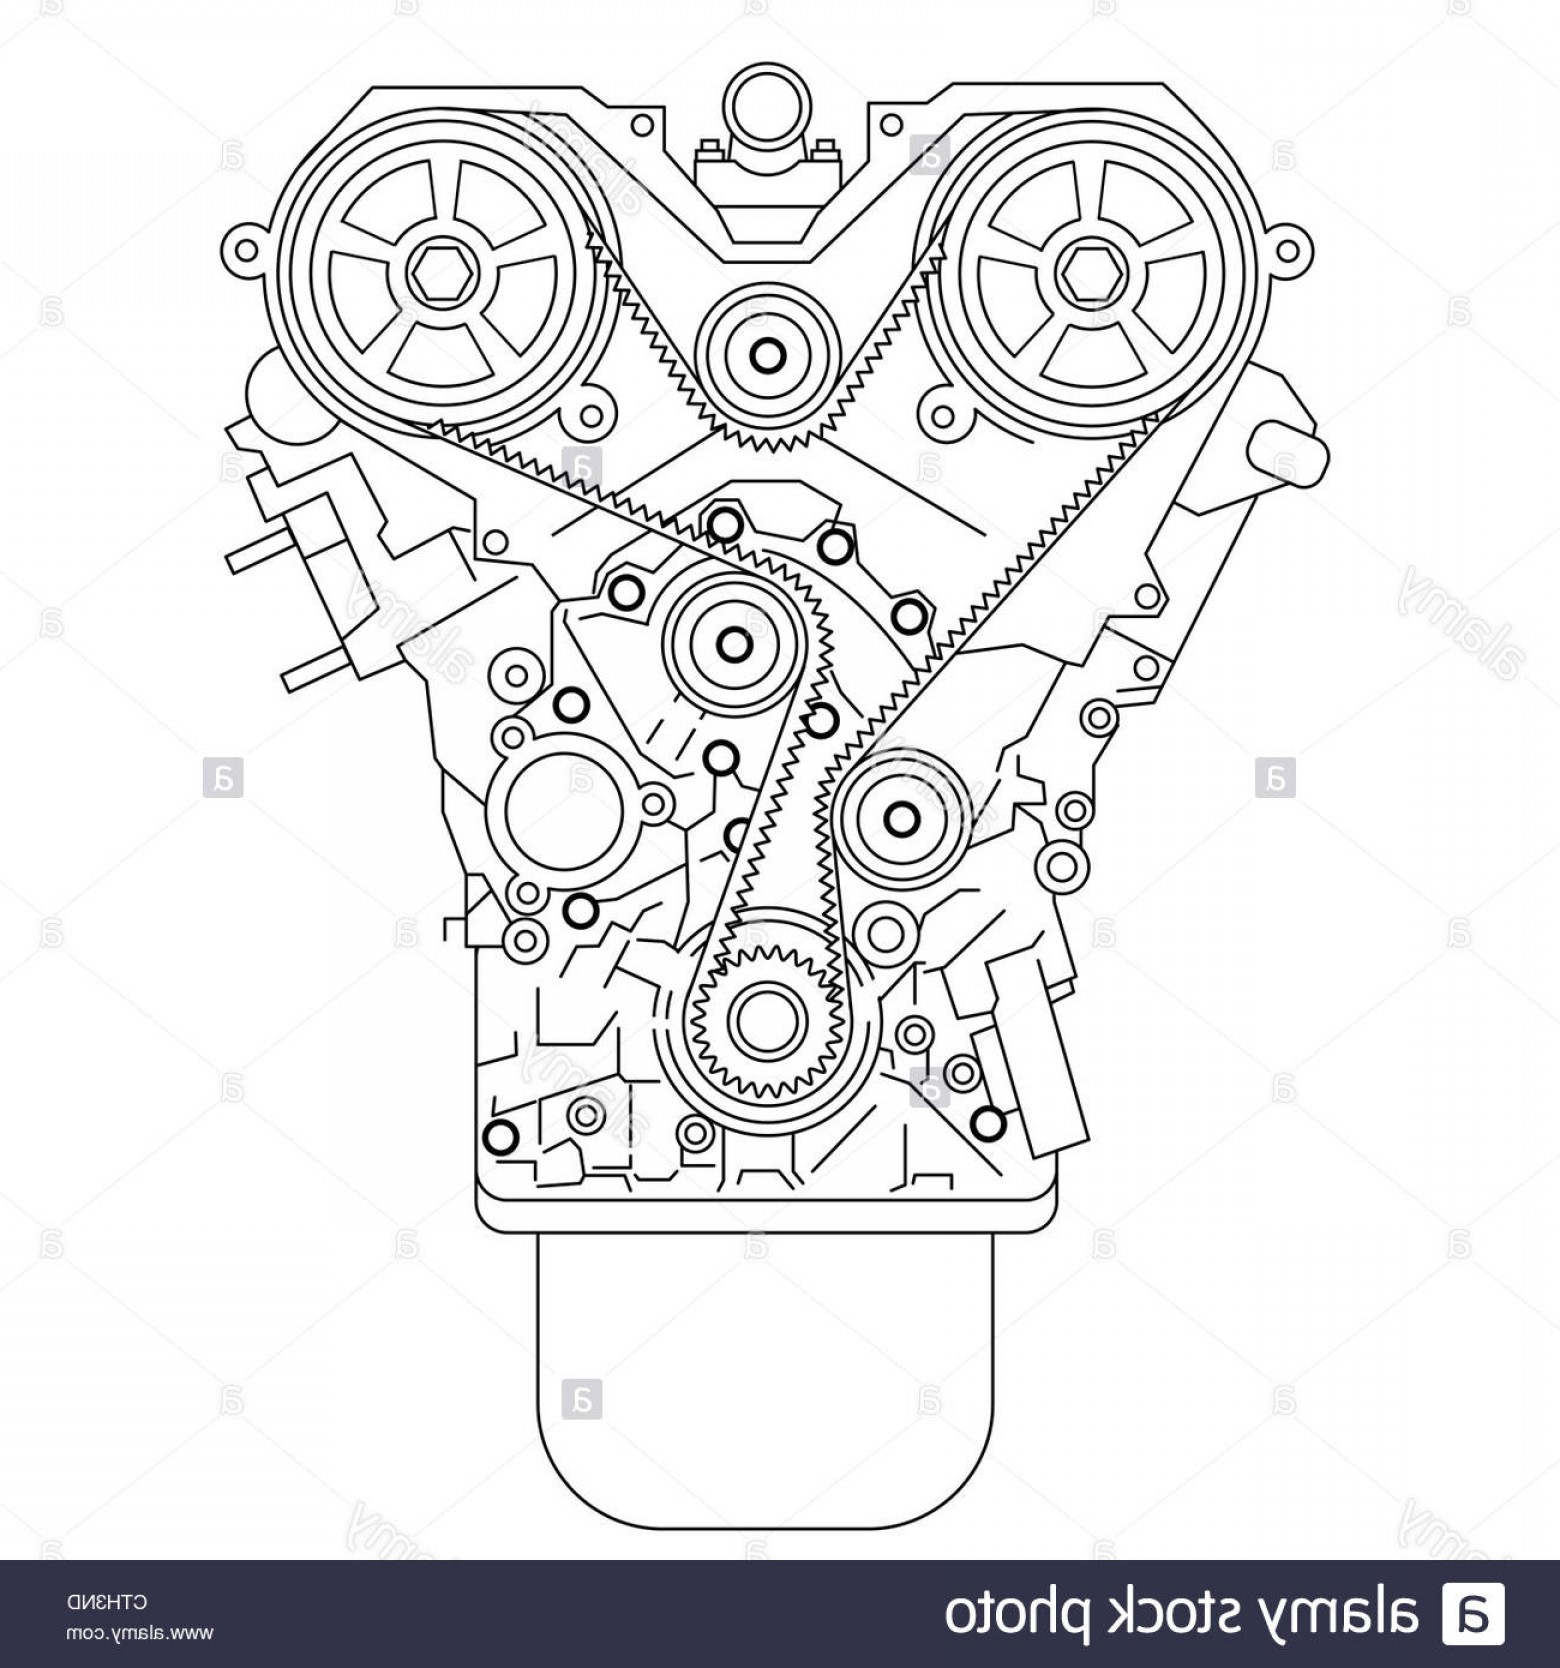 Combustible Engine Vector: Stock Photo Internal Combustion Engine As Seen From In Front Vector Illustration